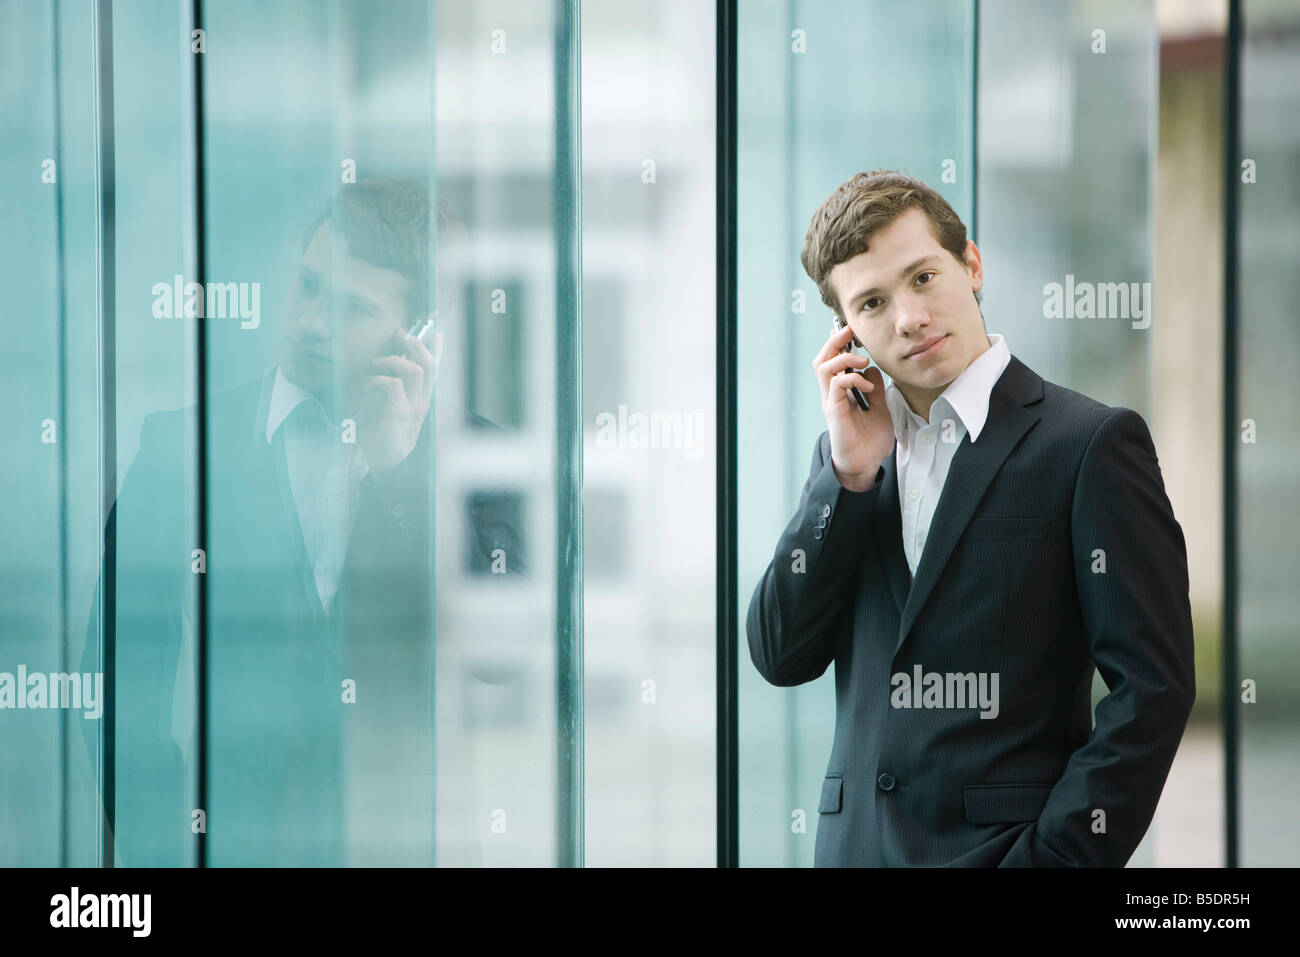 Businessman standing by glass wall talking on cell phone - Stock Image